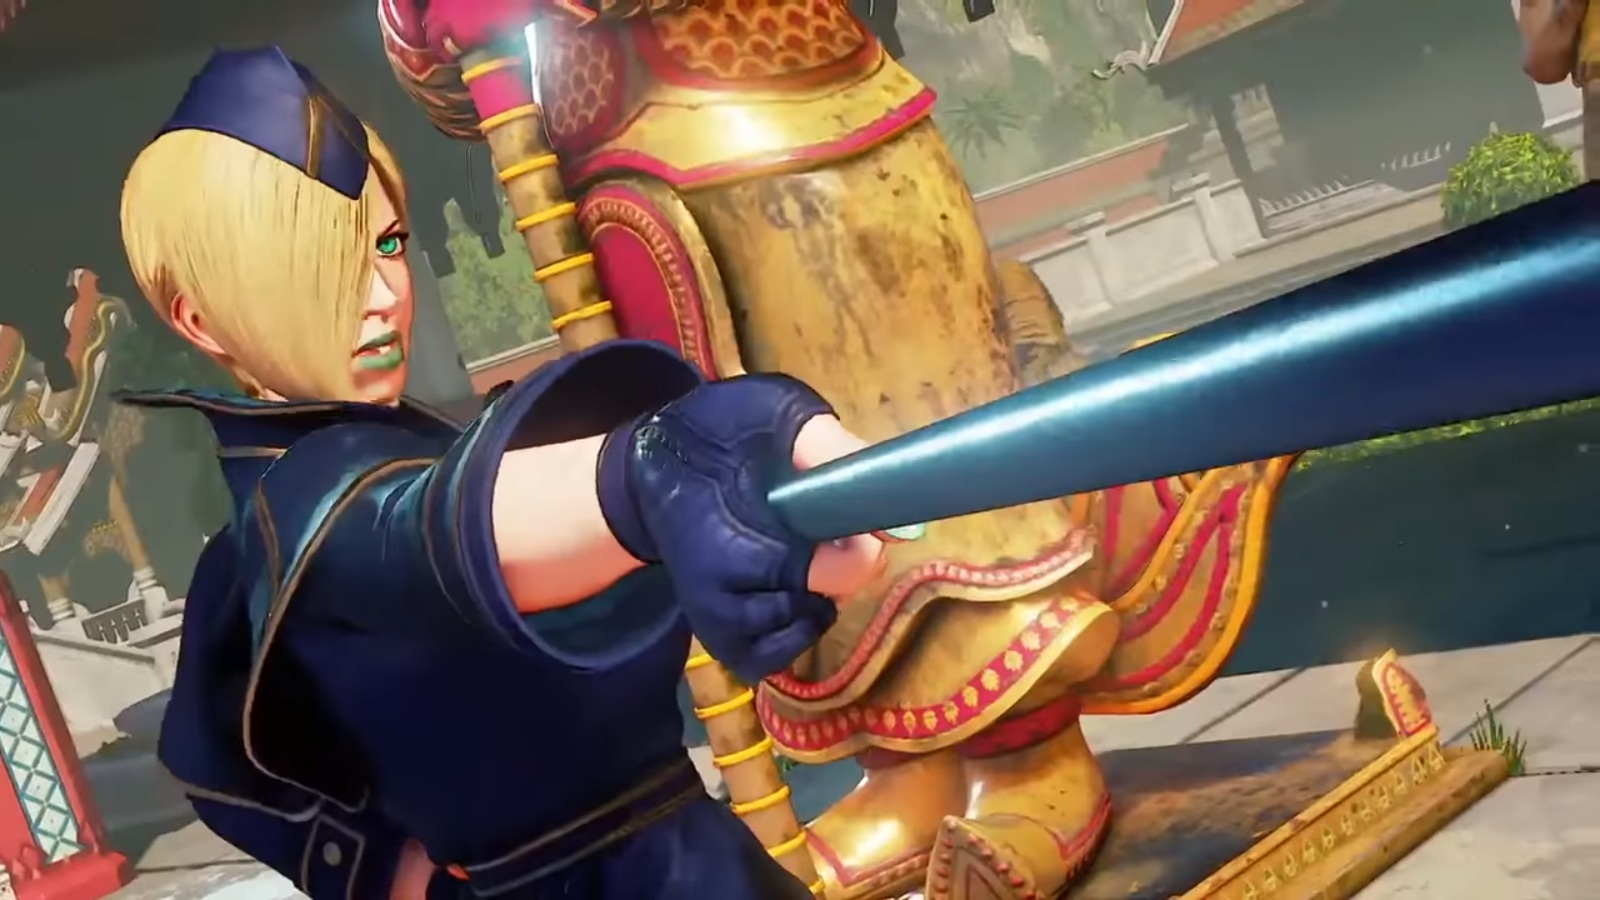 'Street Fighter 5' update: Falke trailer streamed and log-in patch fix announced